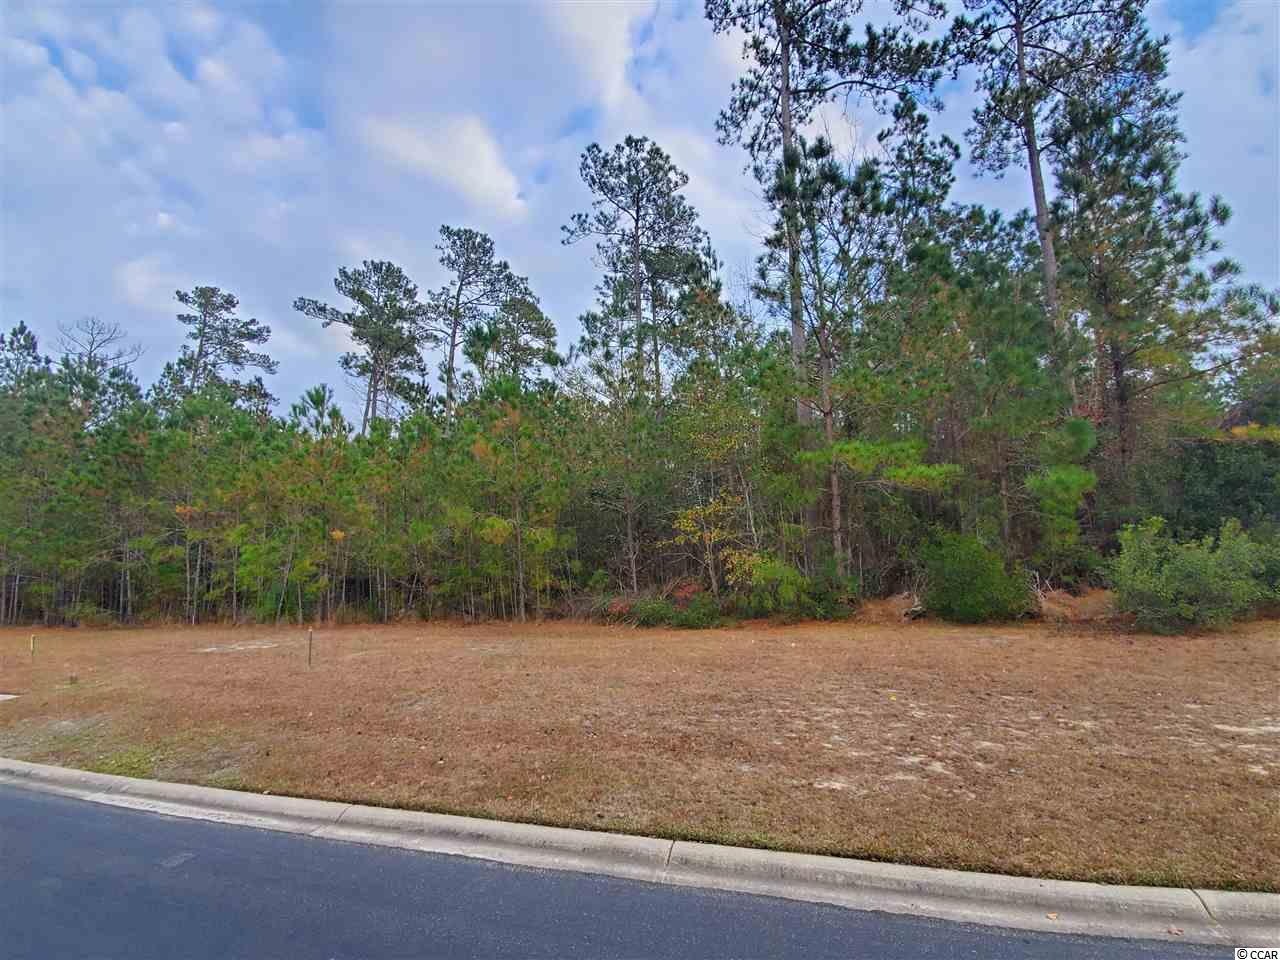 Wooded lot in very desirable, upscale, custom-home neighborhood. Waverly Bay, located within Prince Creek, is a quiet and beautiful gated community with a ton of amenities. With no time frame to build you will have plenty of time to make plans to build your dream custom home. This lot is a short walk, bike ride or golf cart ride to a private ten acre amenities park with a large pool, clubhouse, tennis, picnic areas, soccer field, playground equipment and more.